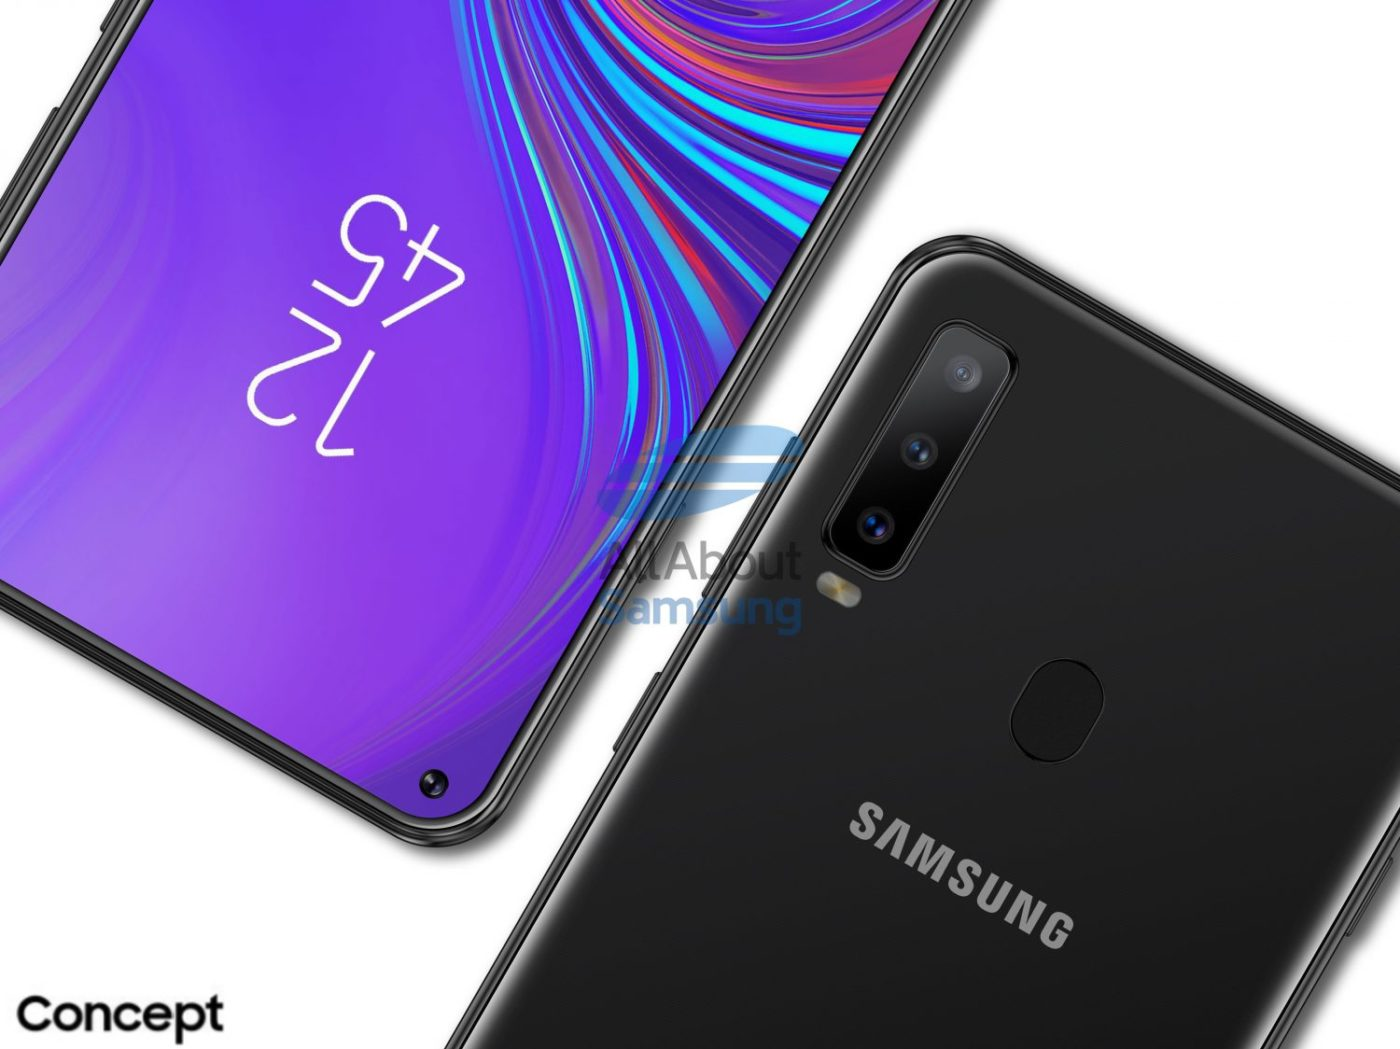 Galaxy A8s Will Be Samsung's First Infinity-O Device, Leaks Suggest 1